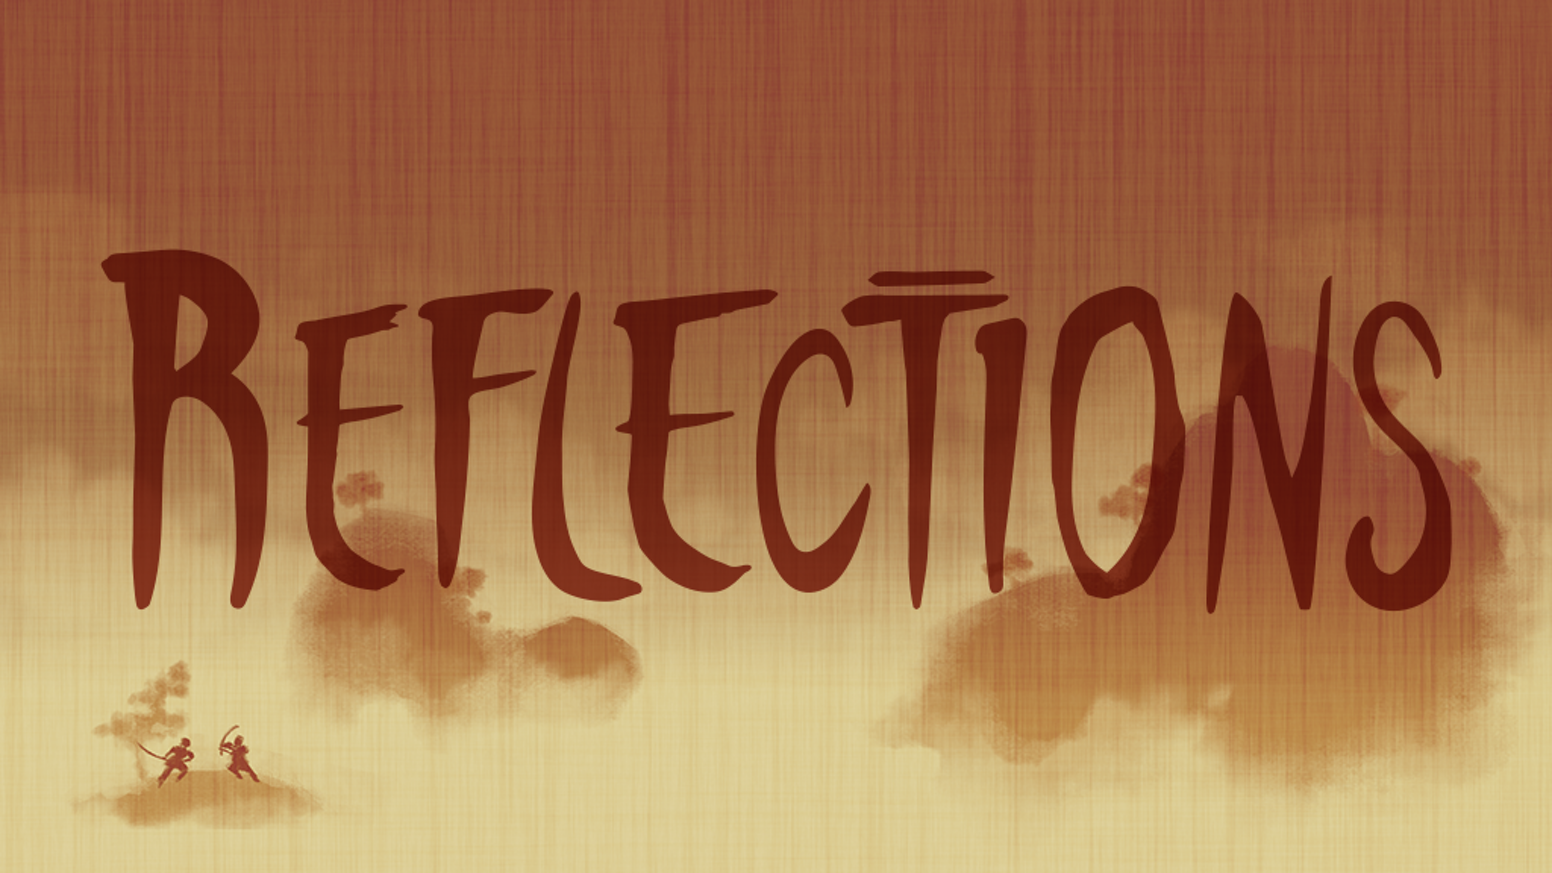 Reflections is a roleplaying game telling the story of how two samurai come to their final duel.